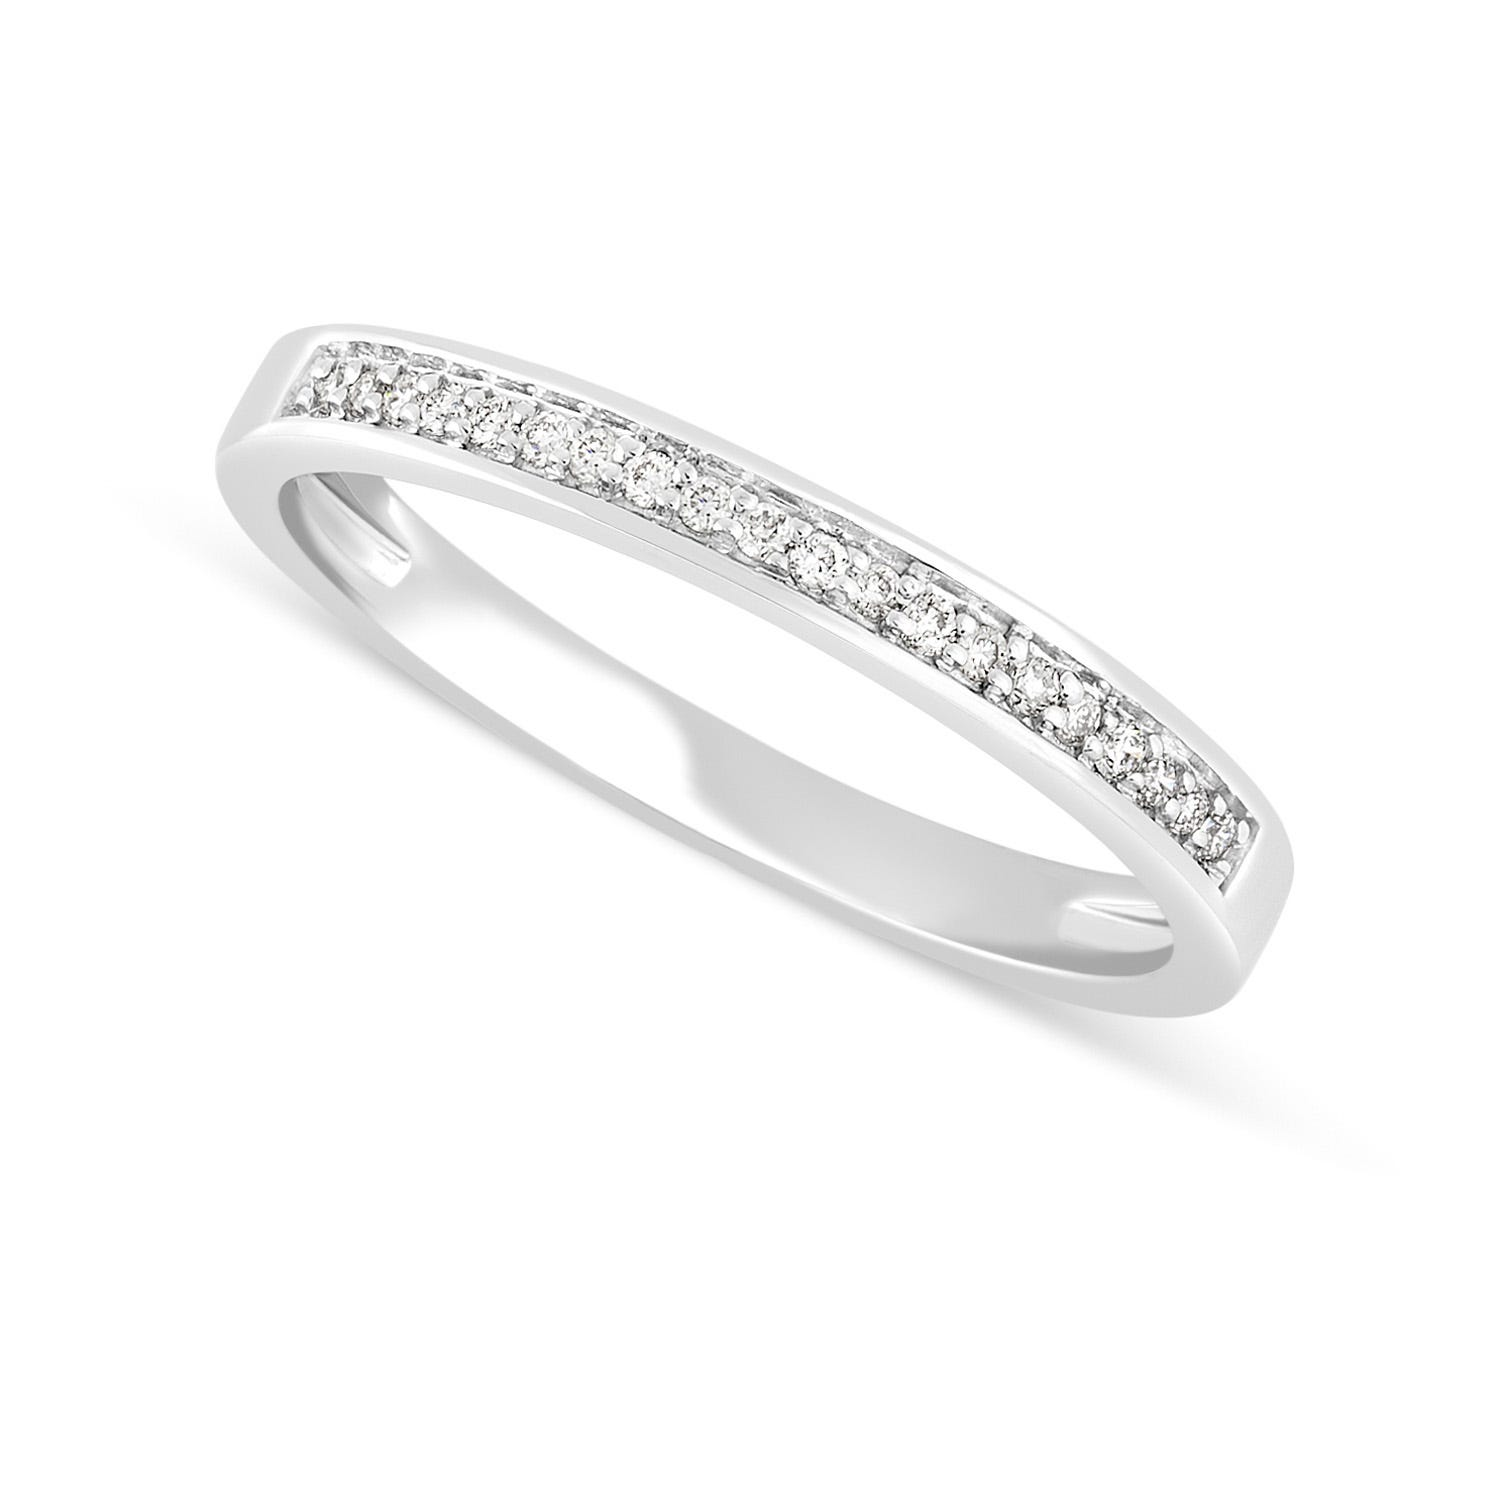 Mystere Ladies' 18ct White Gold Diamond 2.1mm Wedding Ring